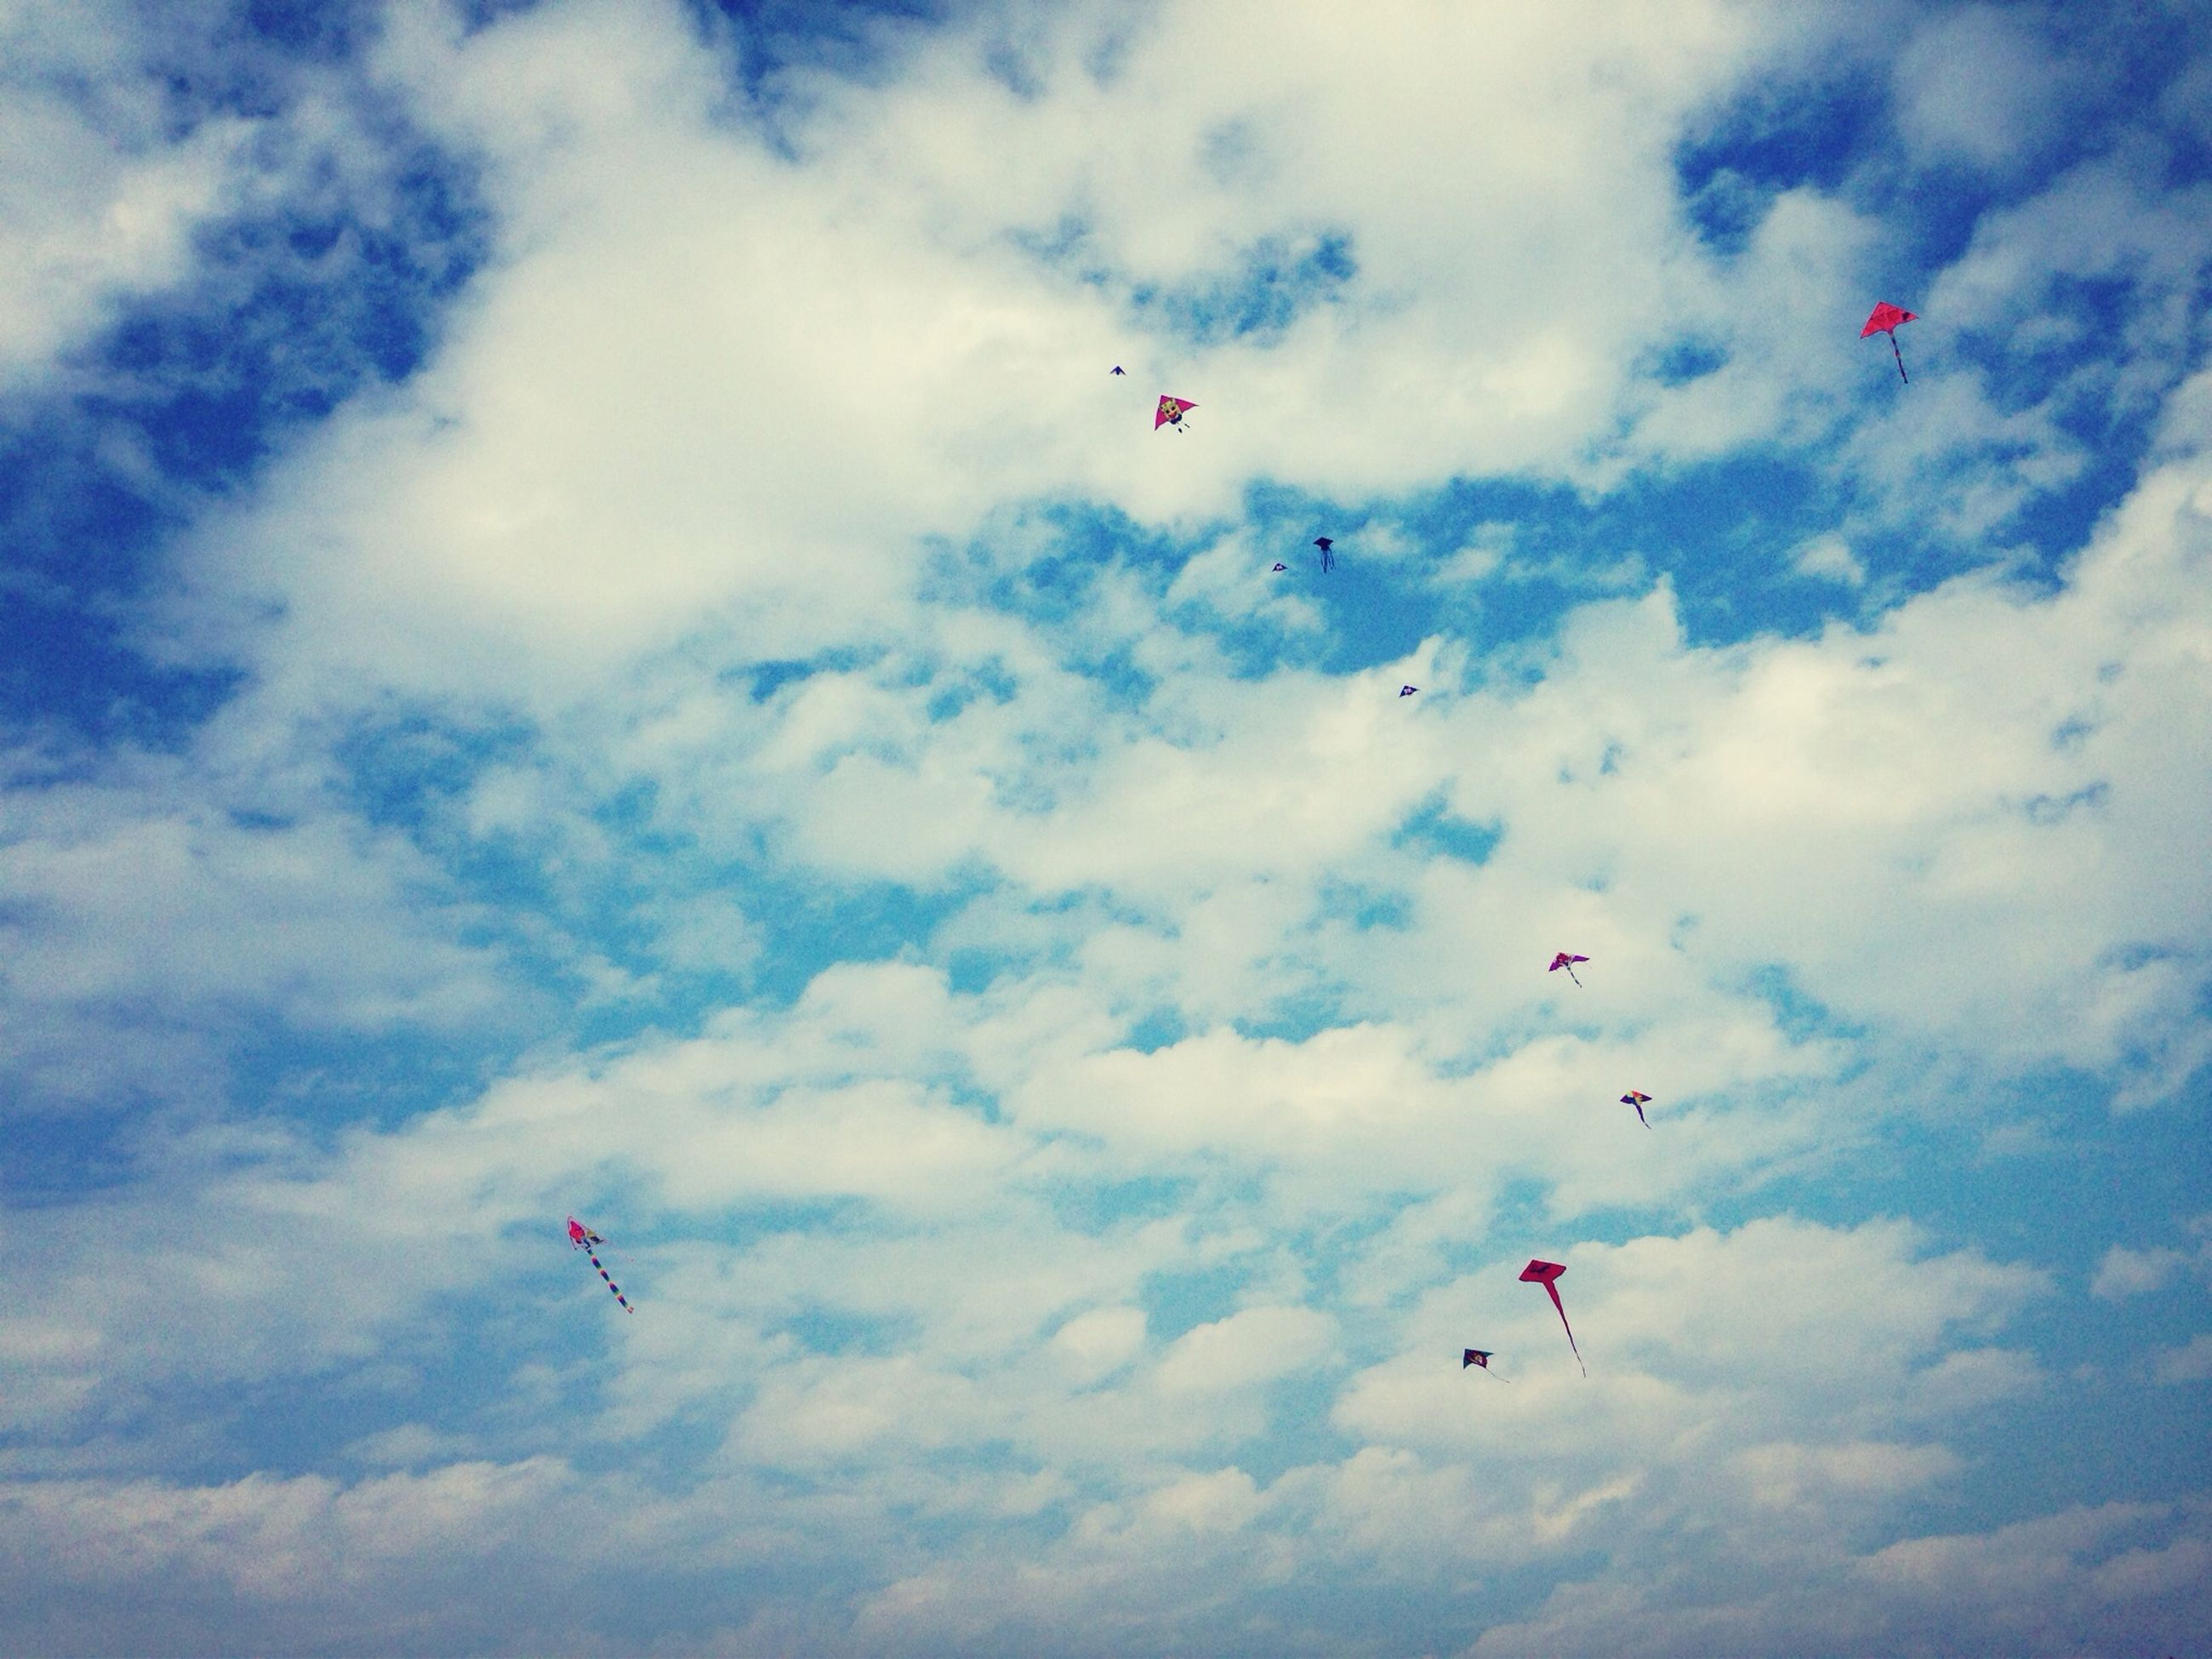 flying, mid-air, low angle view, sky, transportation, air vehicle, cloud - sky, airplane, mode of transport, parachute, blue, adventure, extreme sports, kite - toy, paragliding, freedom, travel, cloud, day, on the move